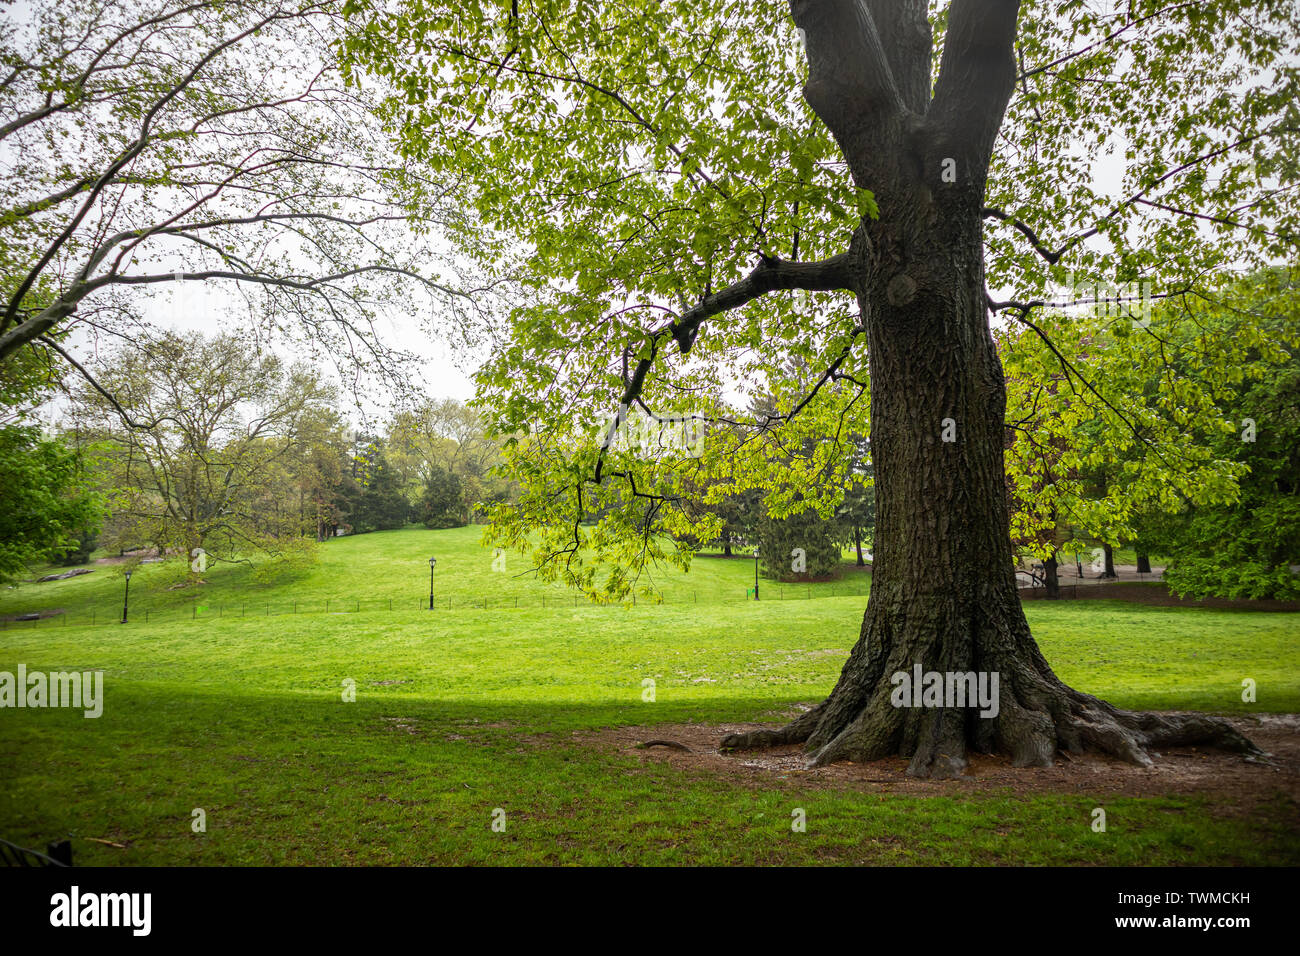 Central Park, New York city. Spring fresh tree foliage and green grass wet after the spring rain - Stock Image